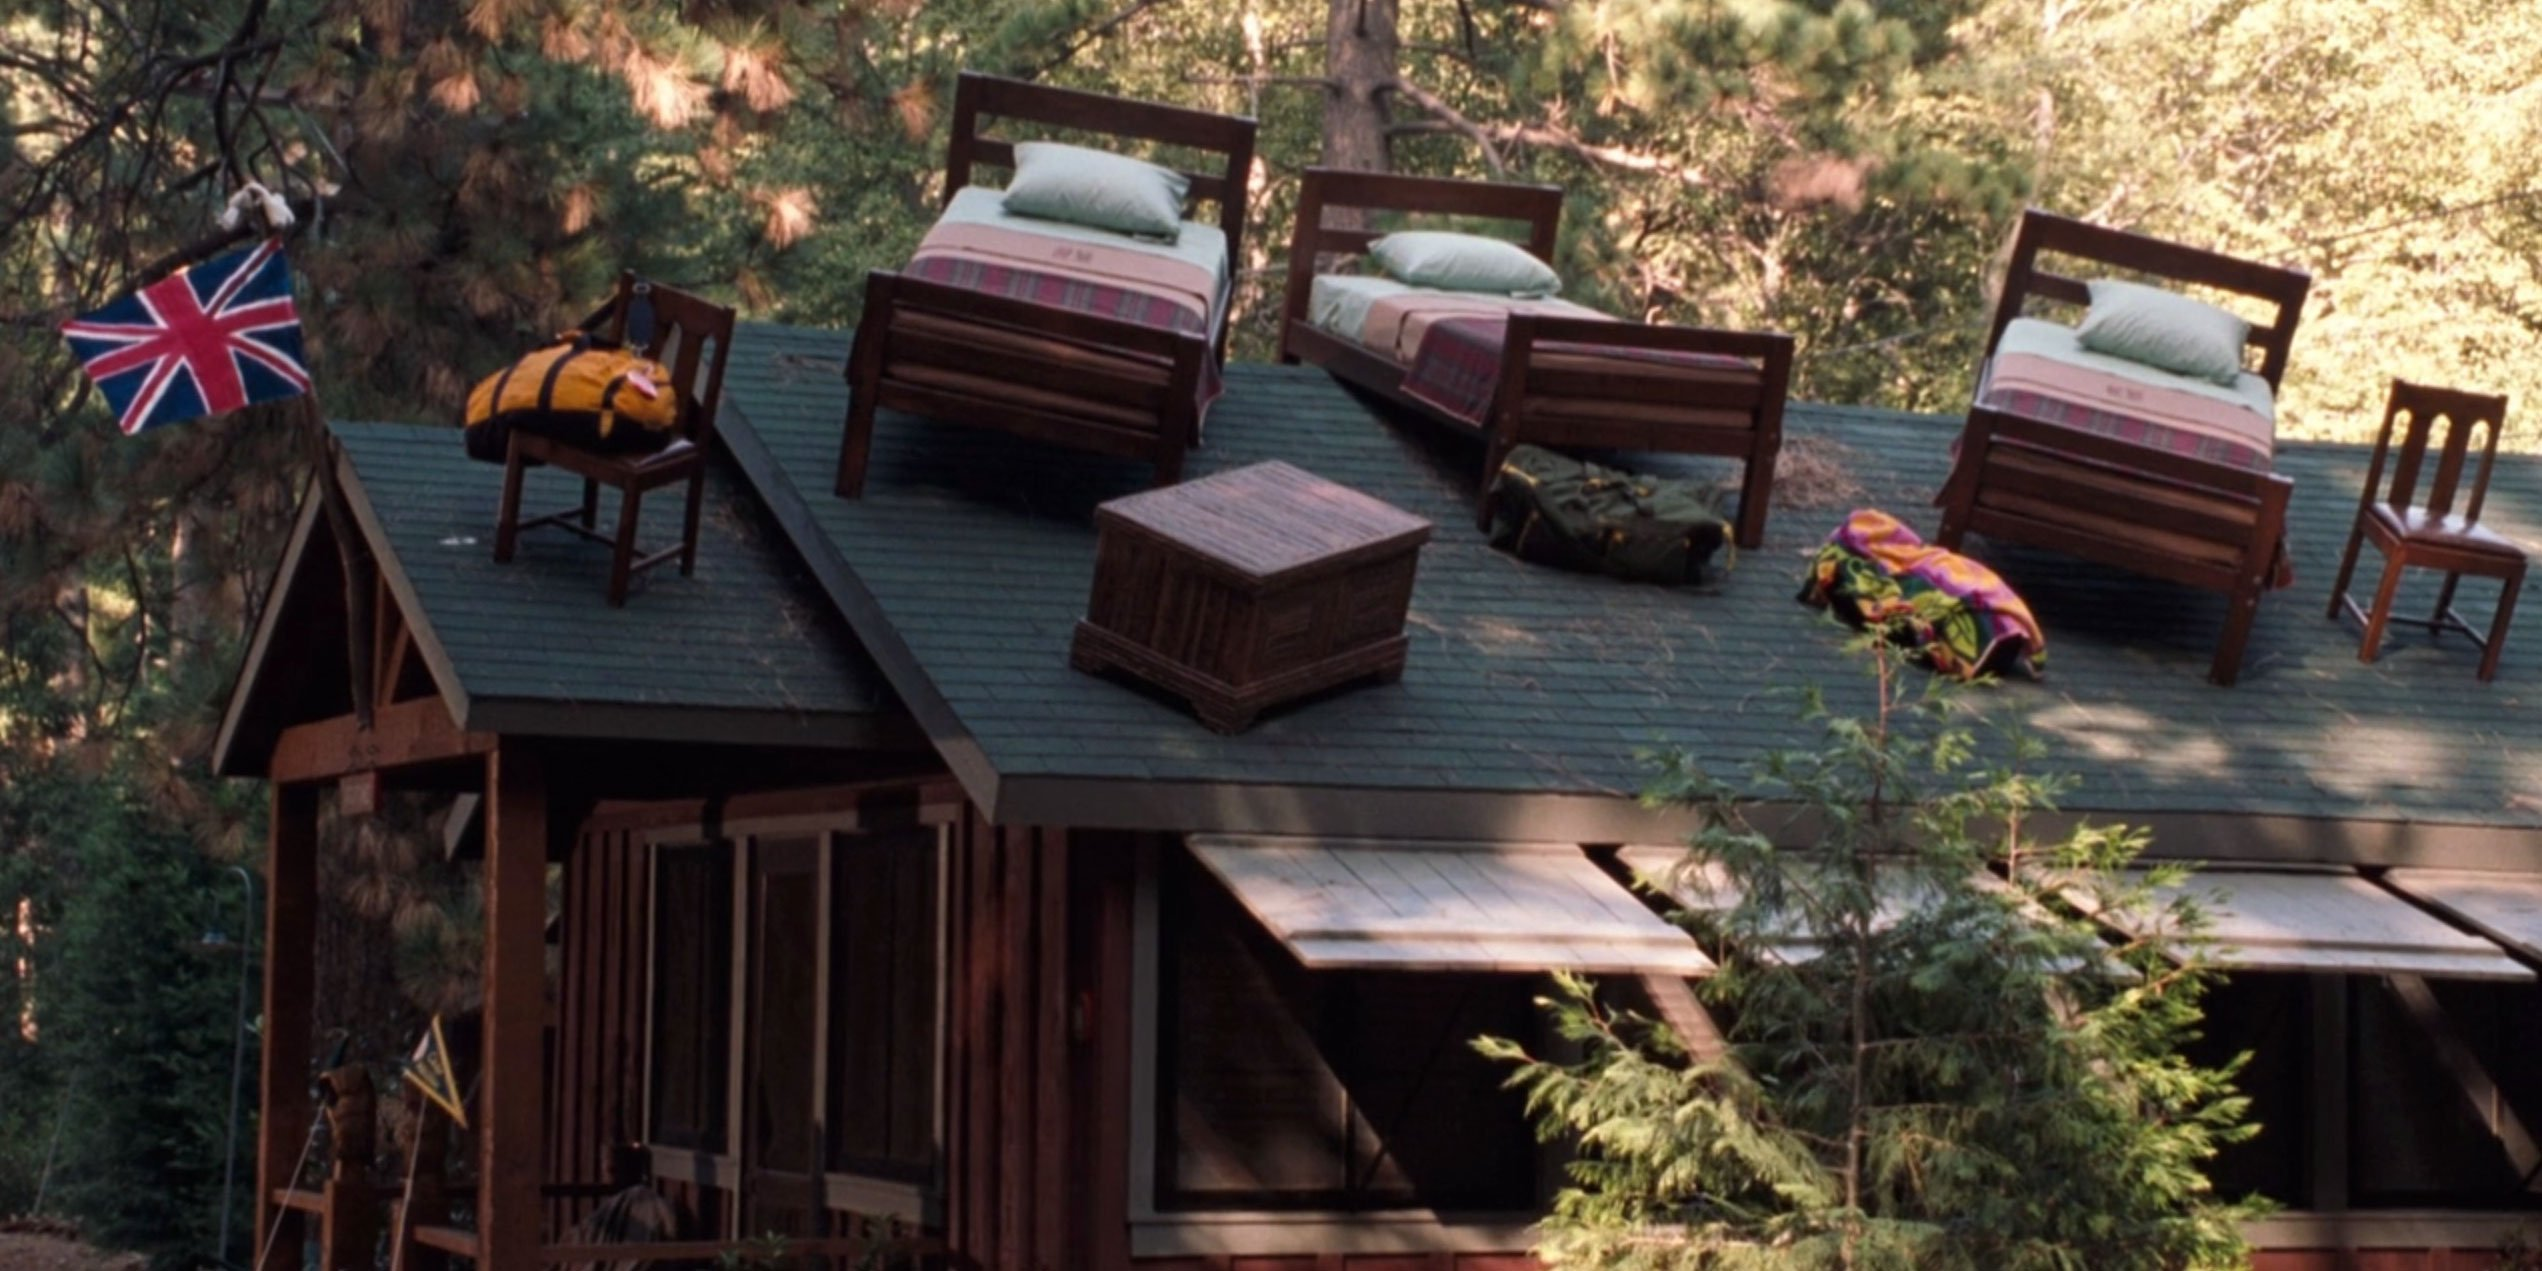 All the furniture on the roof as the prank war intensifies.